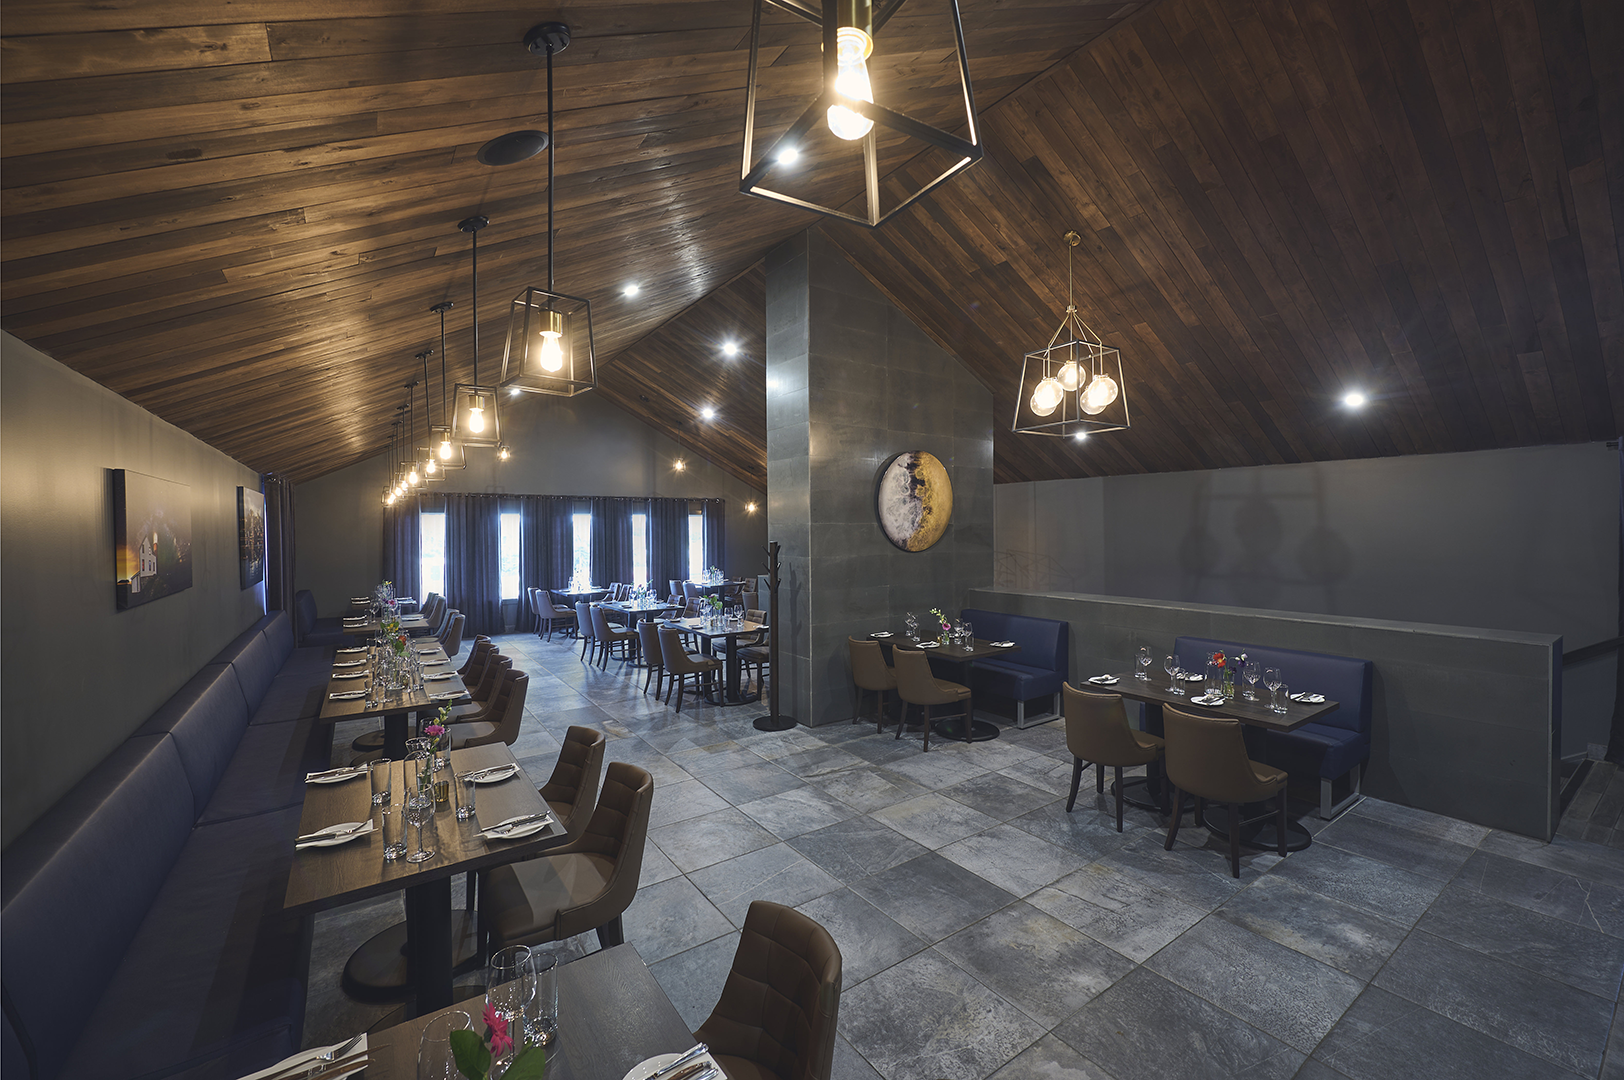 A photo of our main upstairs dining room, showing beautiful wood walls, contemporary lighting, bench seating, and tables and chairs.